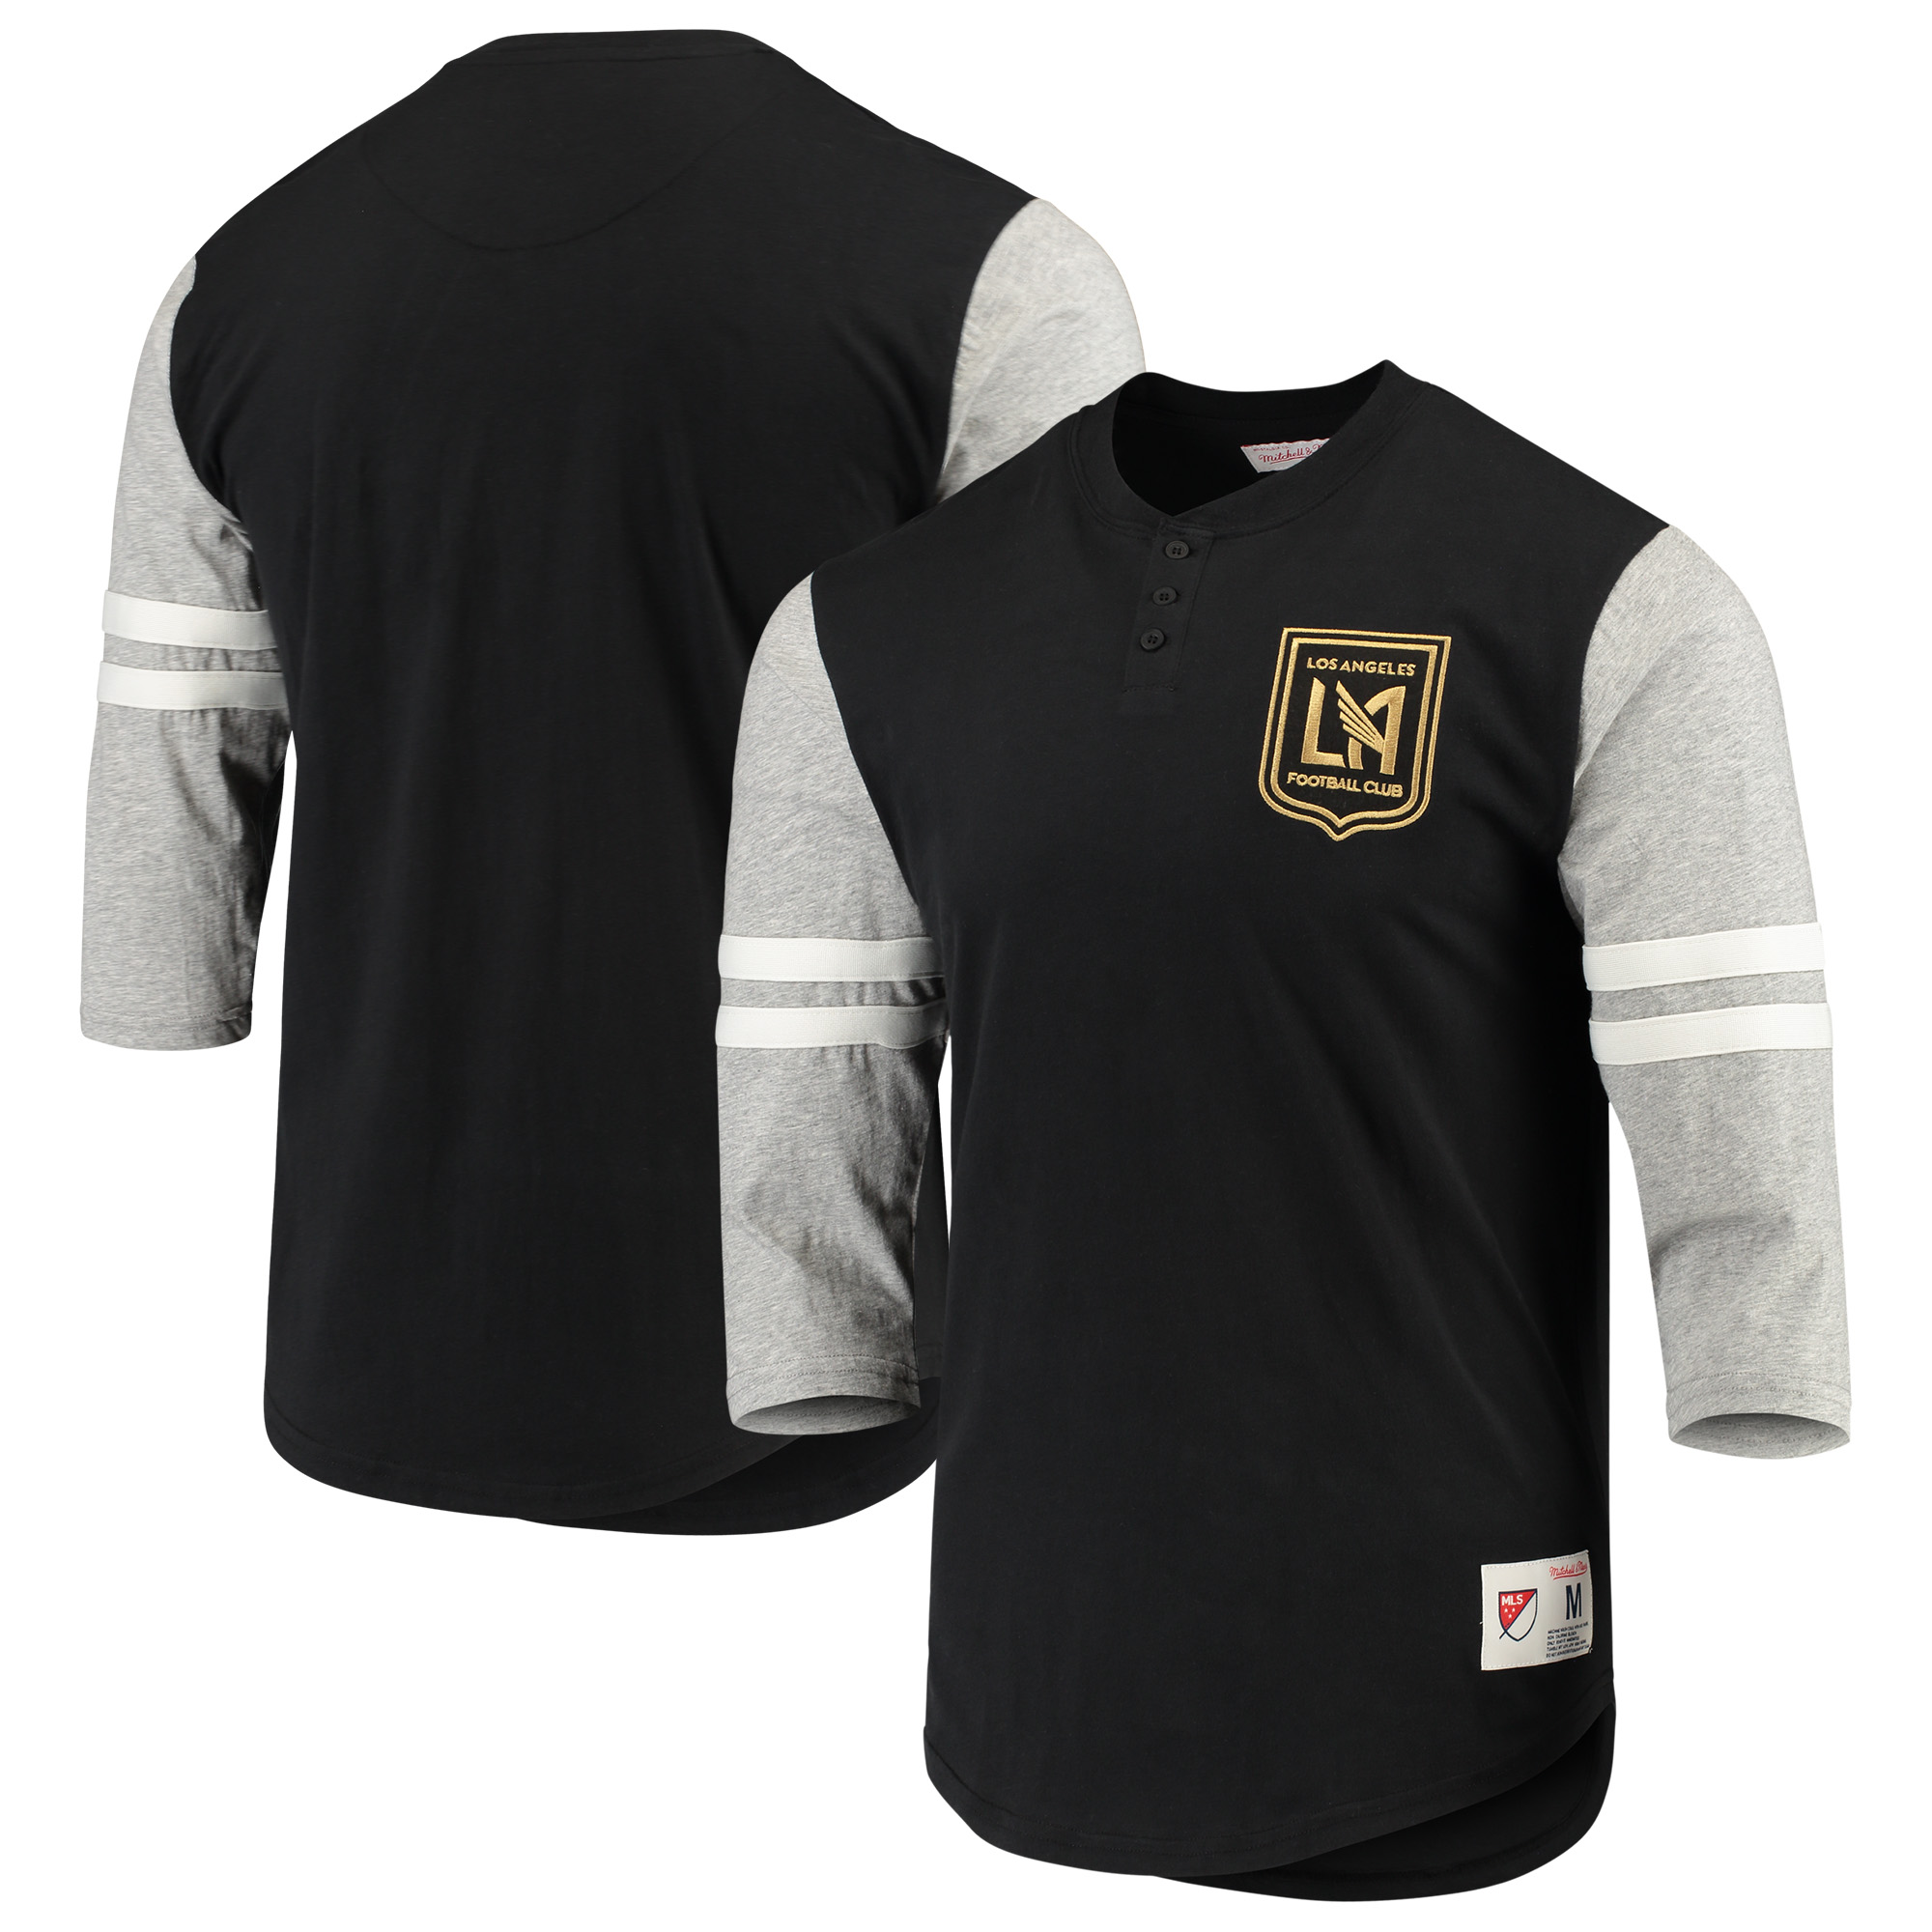 LAFC Mitchell & Ness Henley 3/4 Sleeve T-Shirt - Black